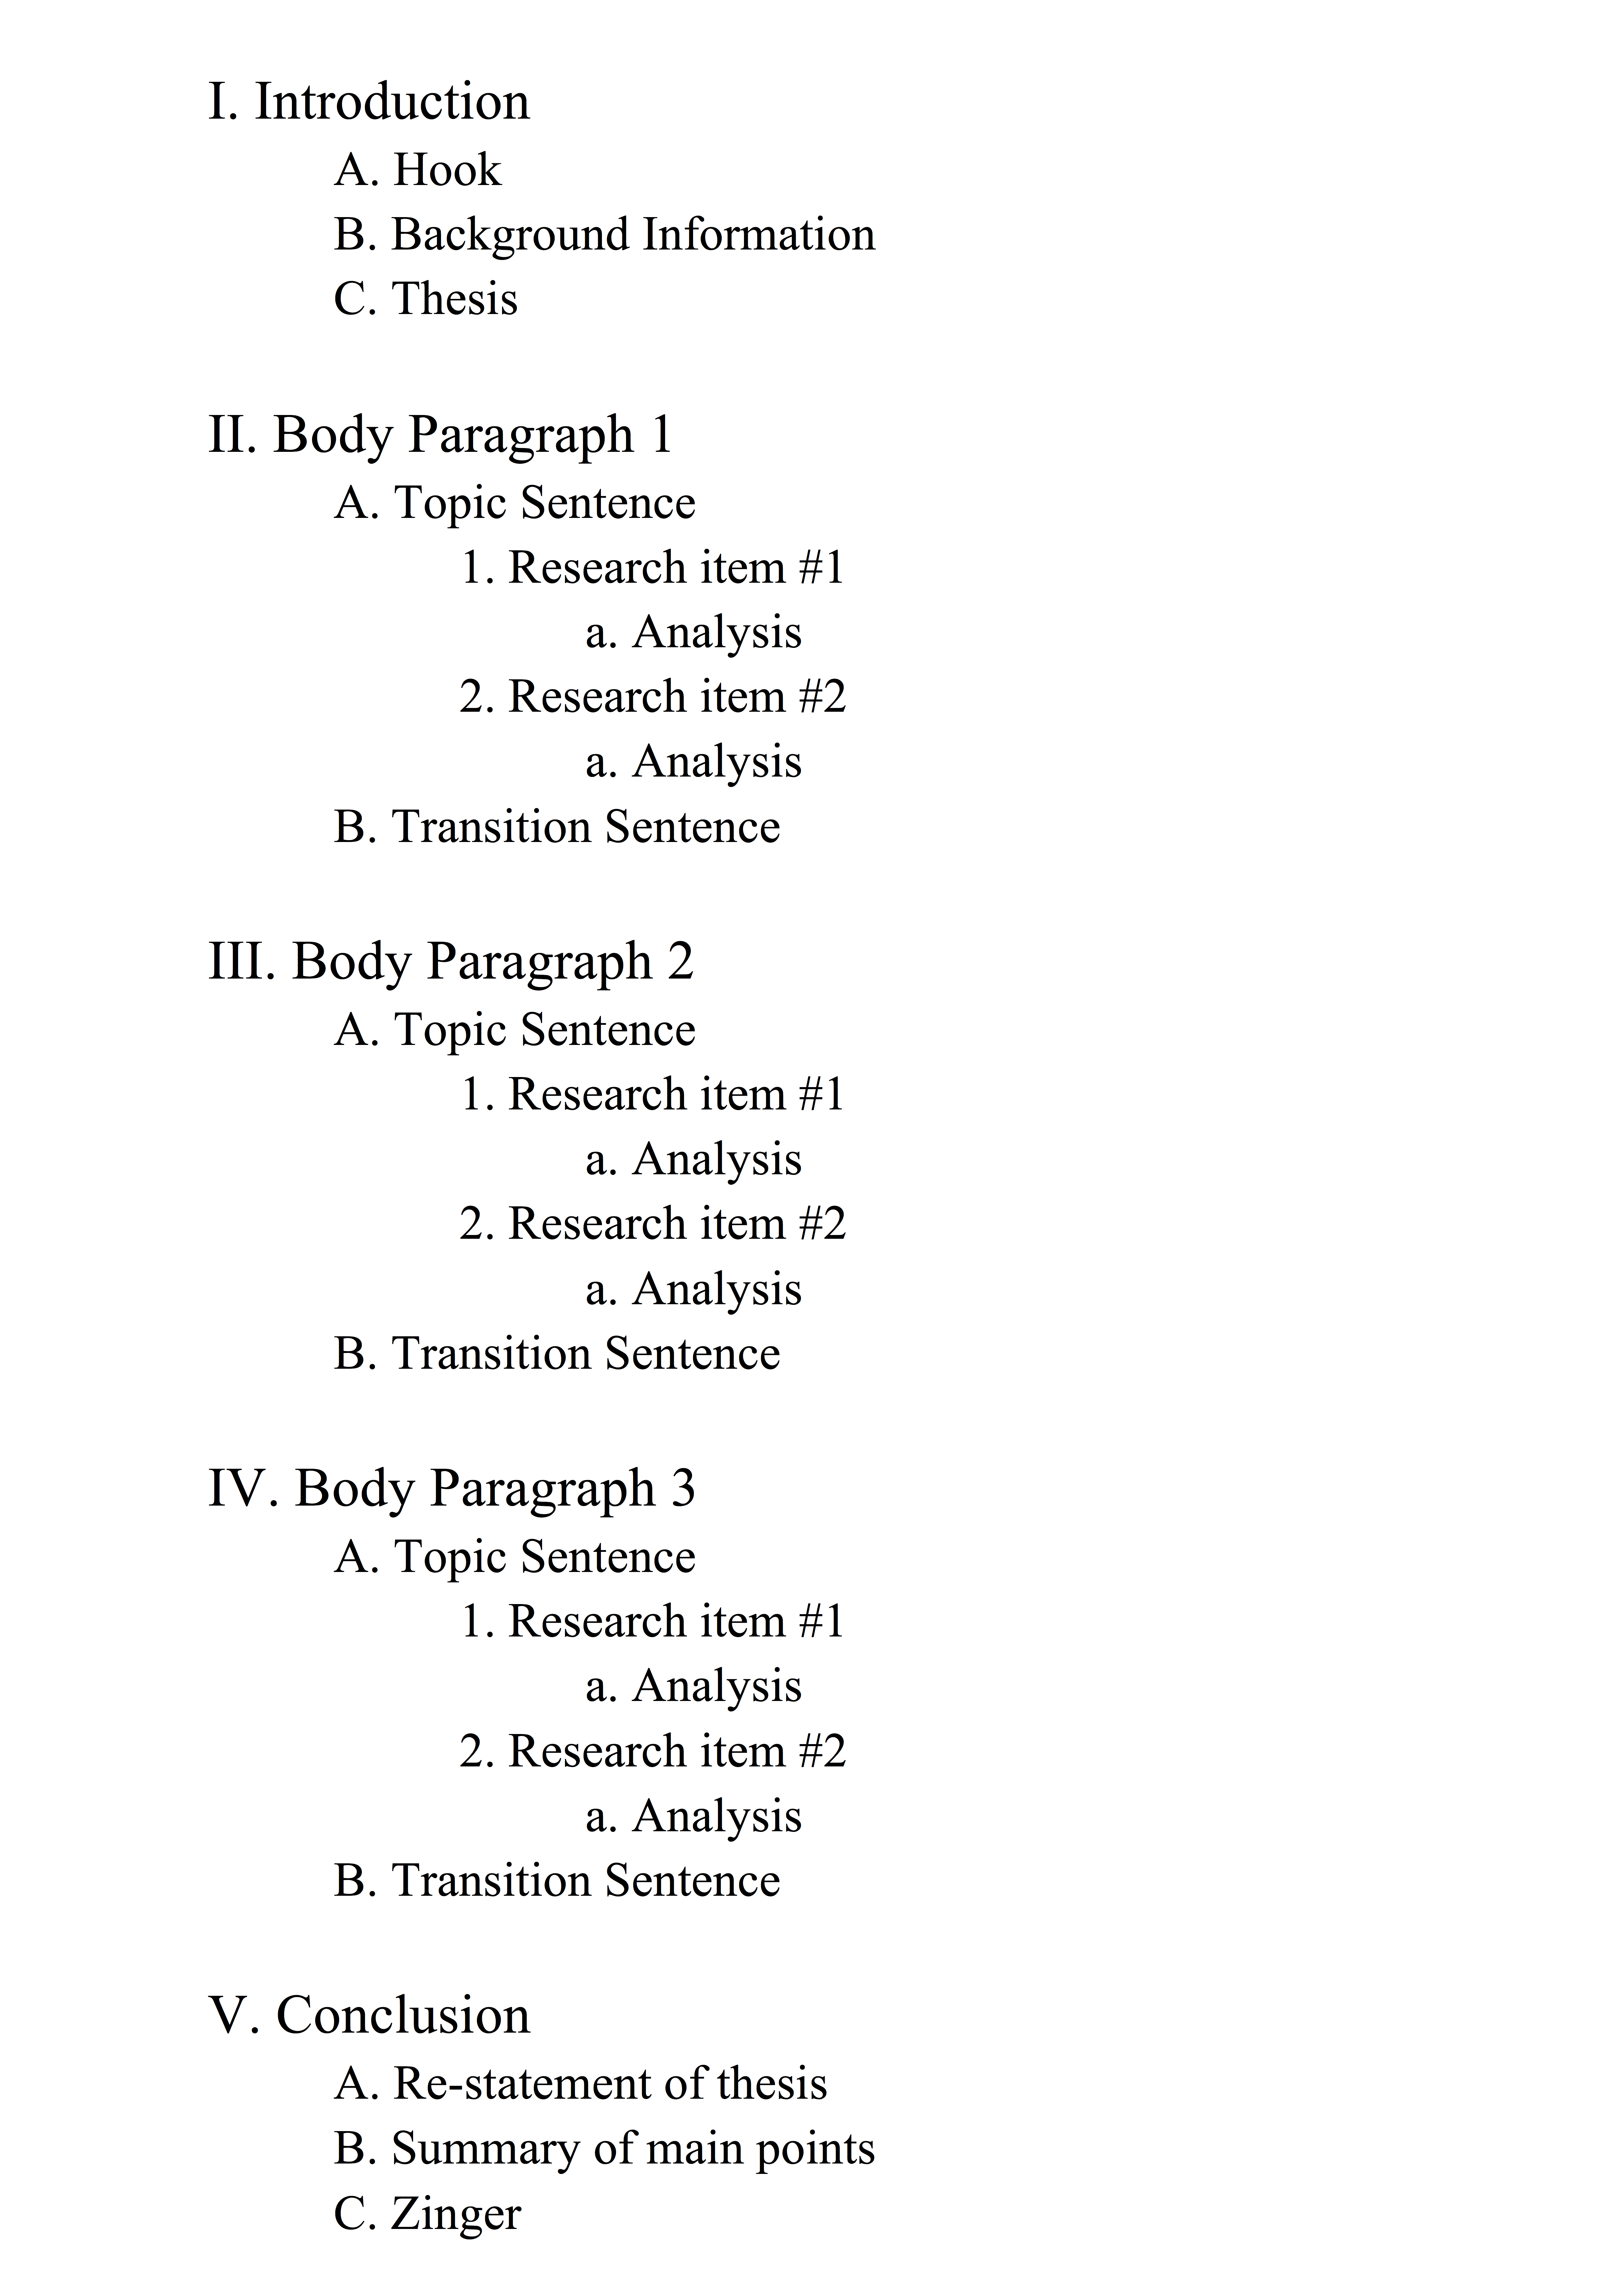 014 Outline Example Mla Research Paper Museumlegs